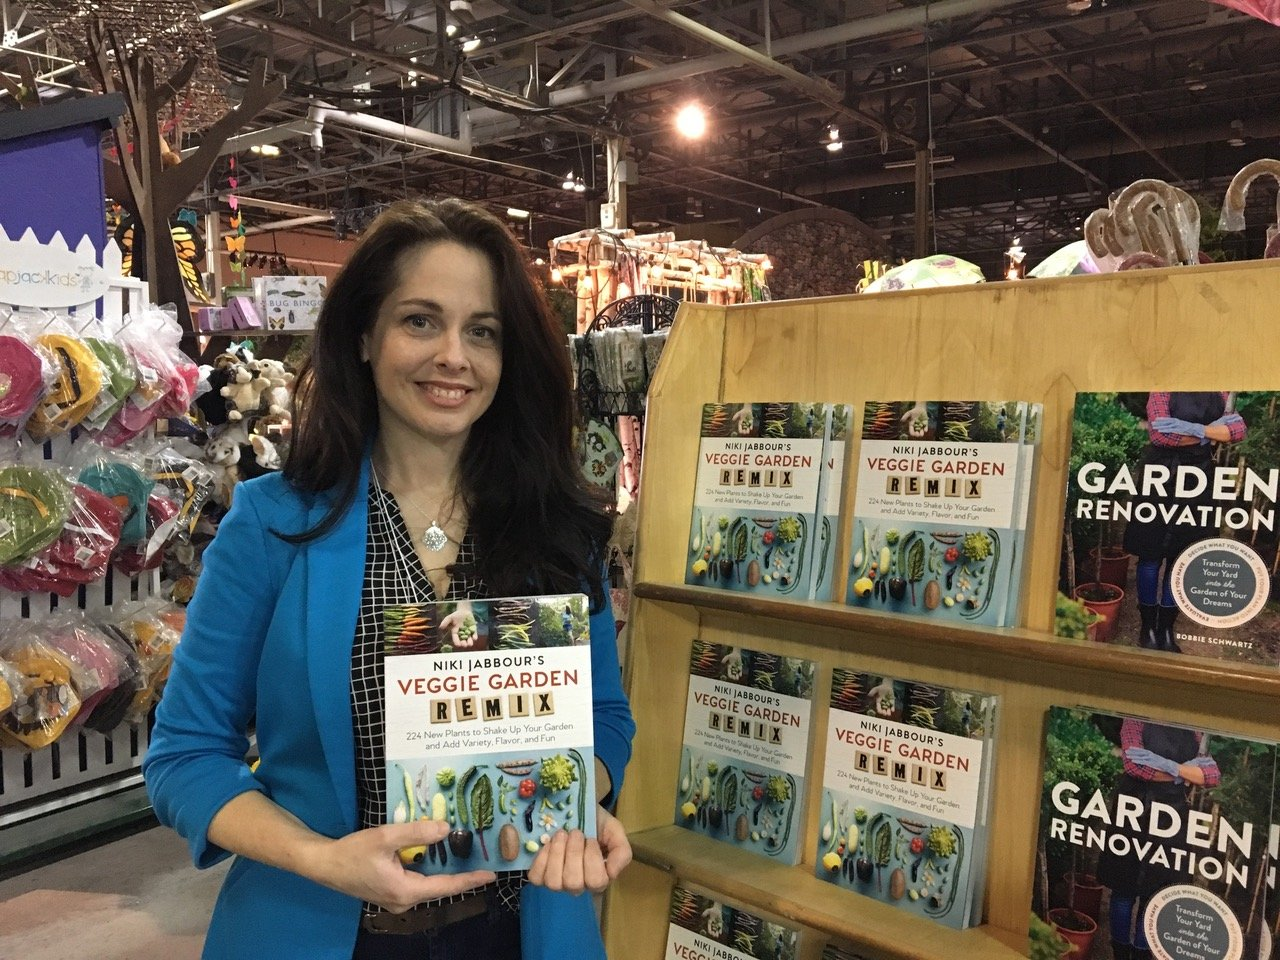 Year-Round Gardening With Niki Jabbour Of Savvy Gardening